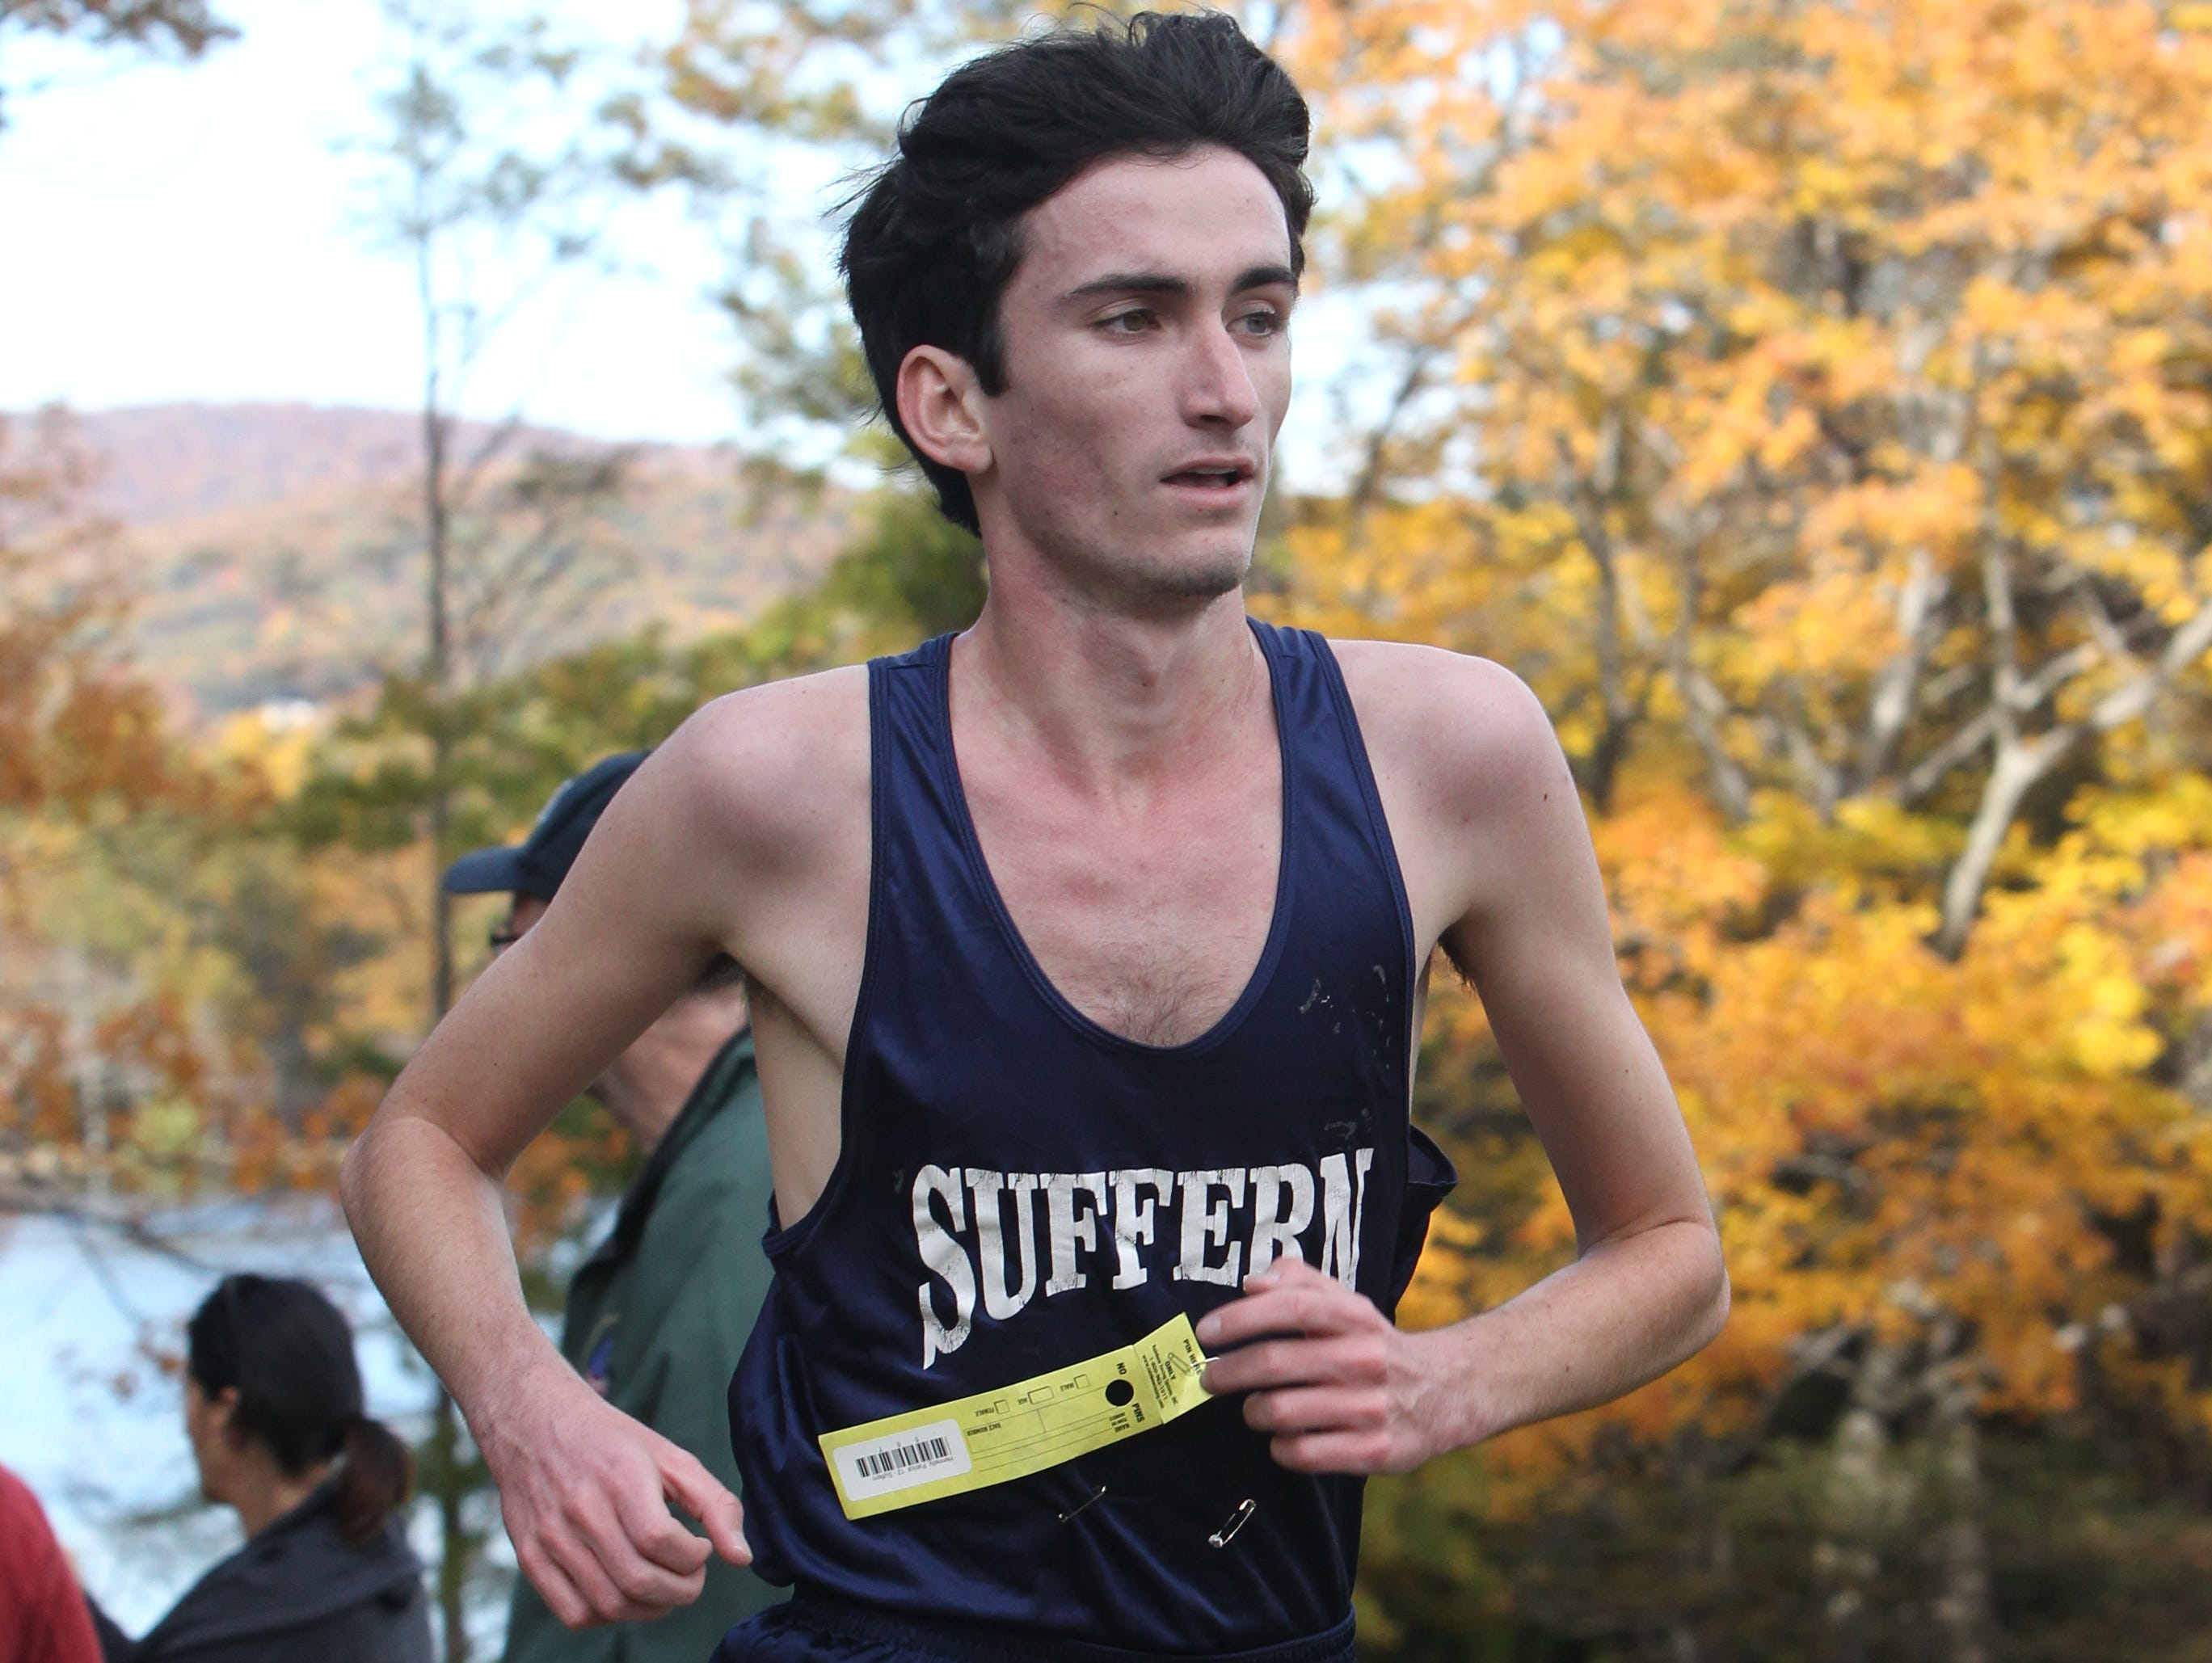 Suffern's Patrick Hennelly won the Rockland County Cross Country Championship at Bear Mountain Oct. 29, 2015.